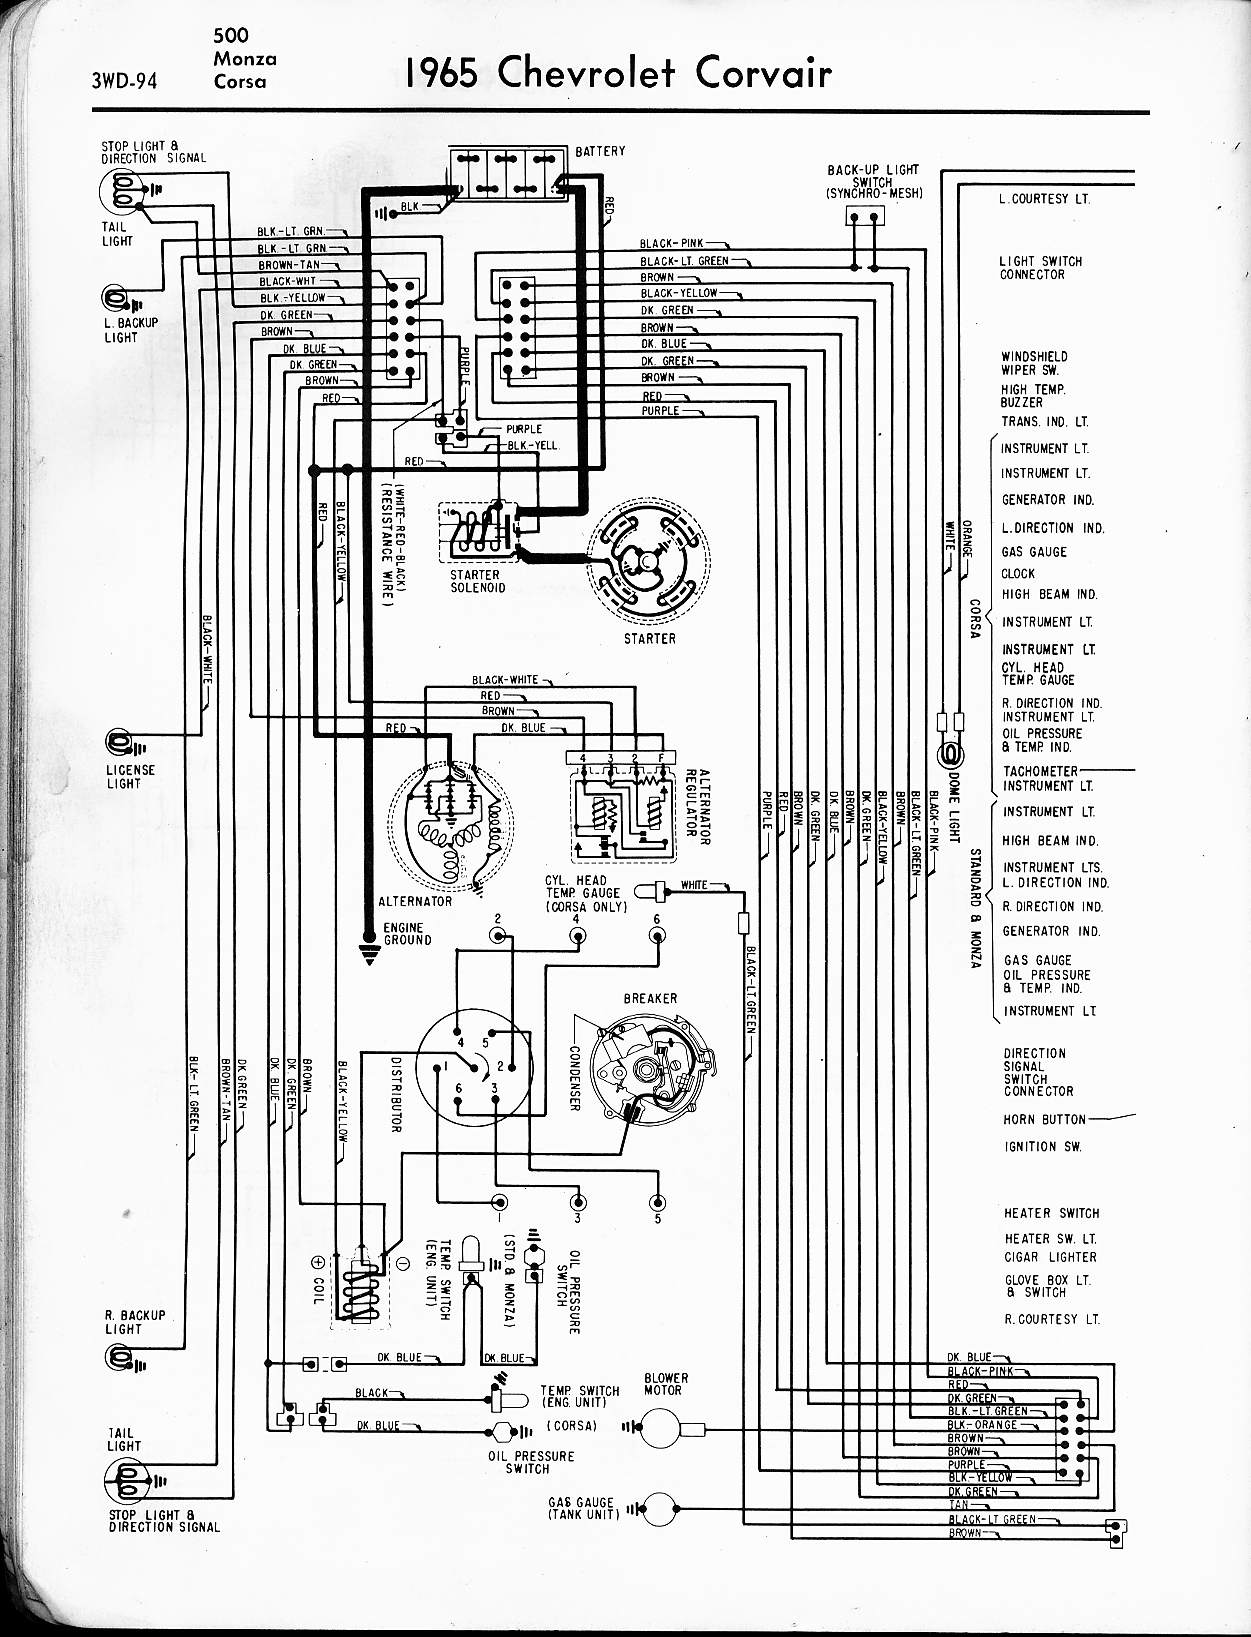 MWireChev64_3WD 094 57 65 chevy wiring diagrams 1965 corvair wiring diagram at aneh.co